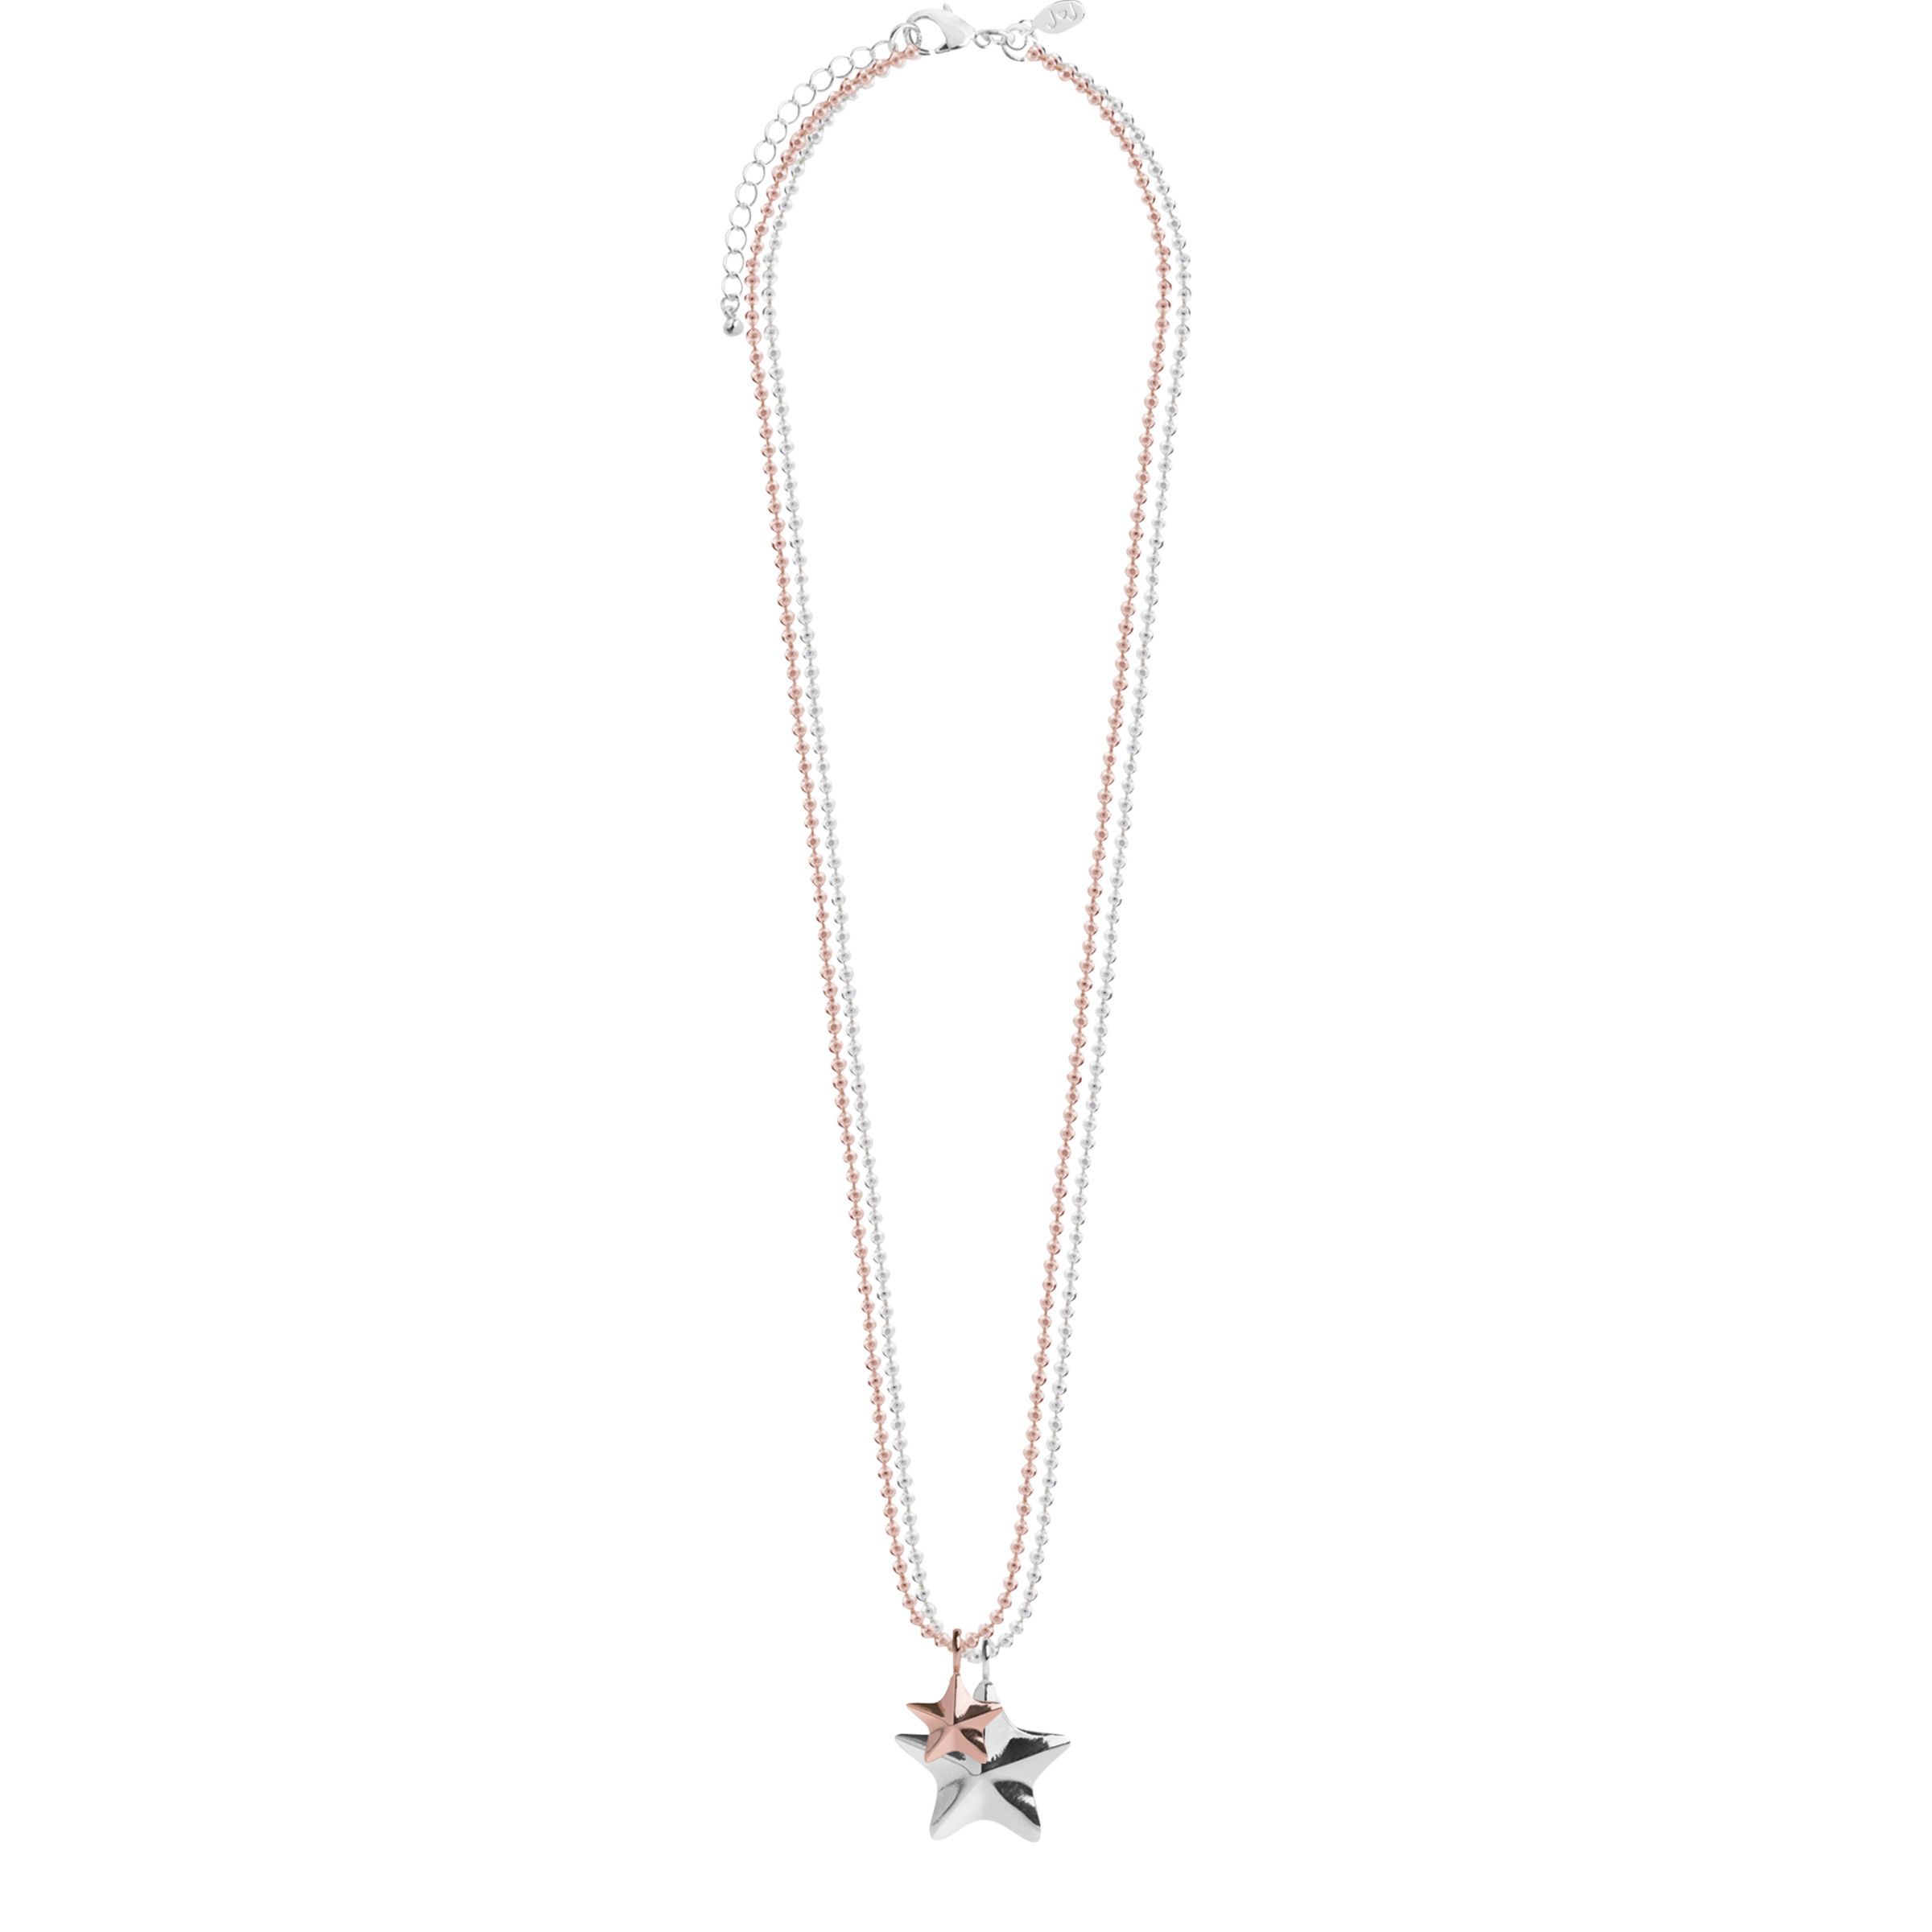 Joma Joma Facetted Star Pendant Necklace, Silver/Rose Gold